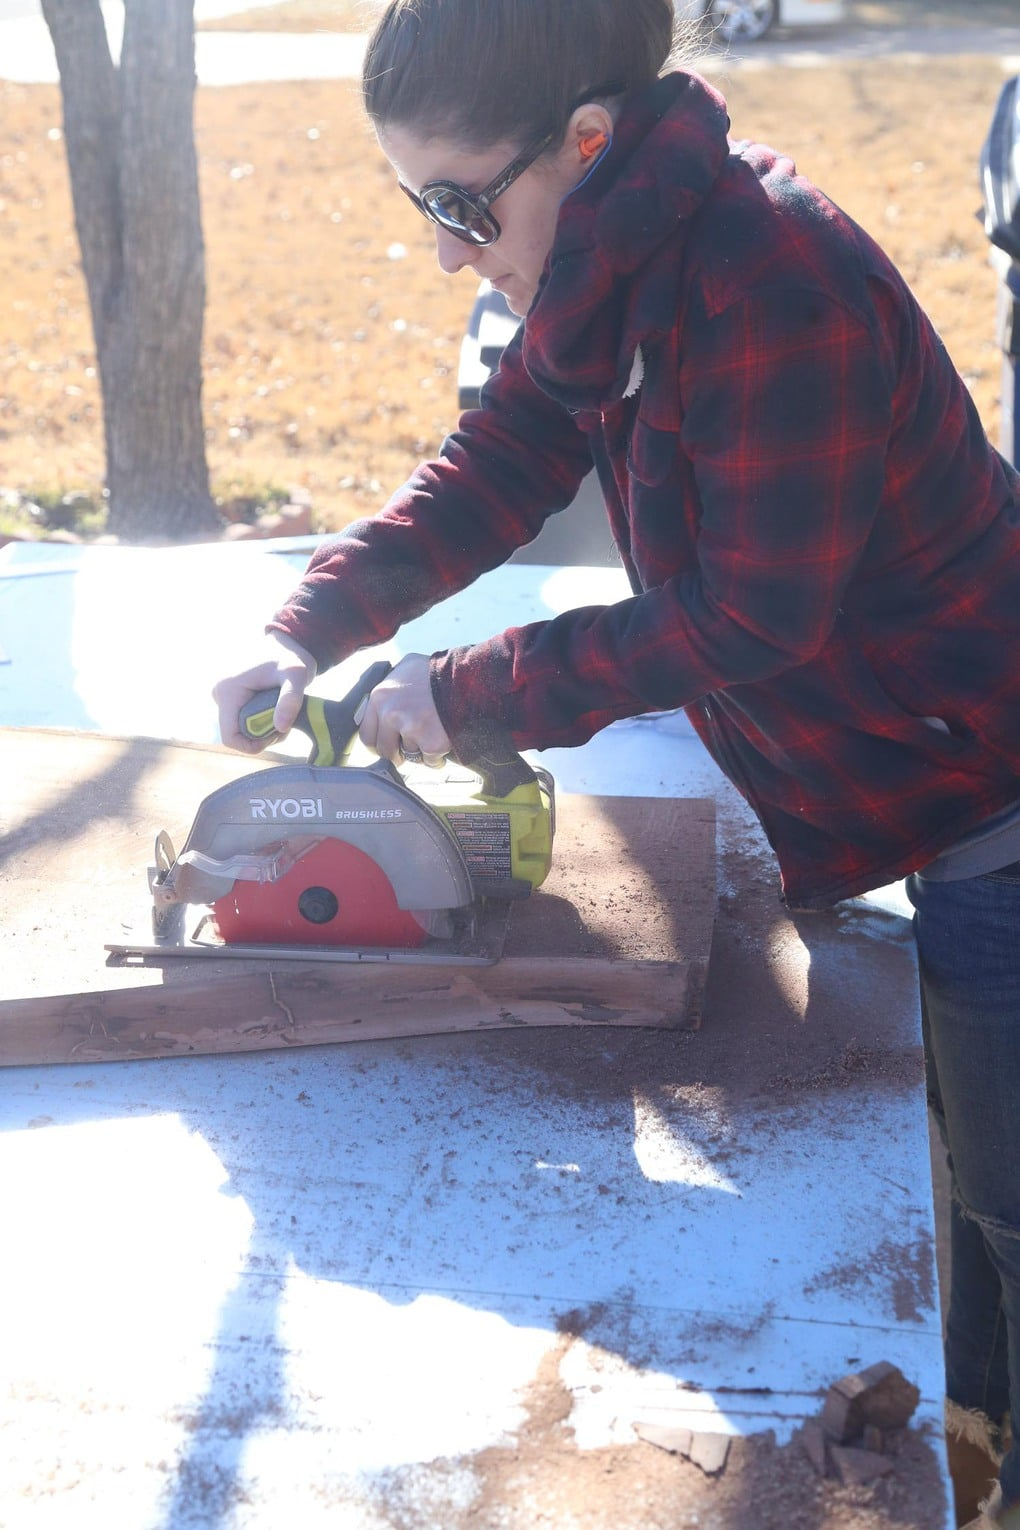 Using circular saw to cut table down for DIY entry table